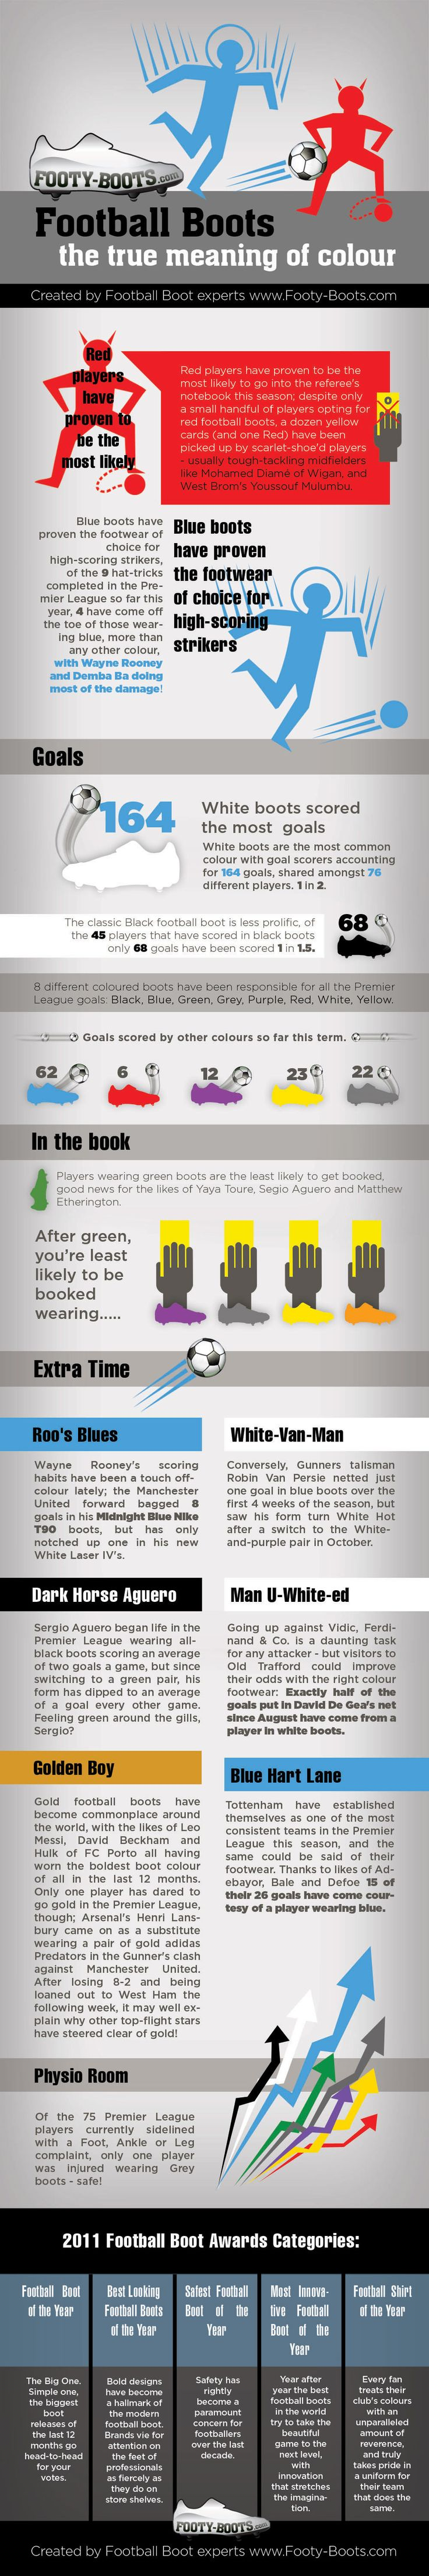 The real story behind the colour of football boots! We studied the English Premier League for four months of the 2011-12 season to see which football